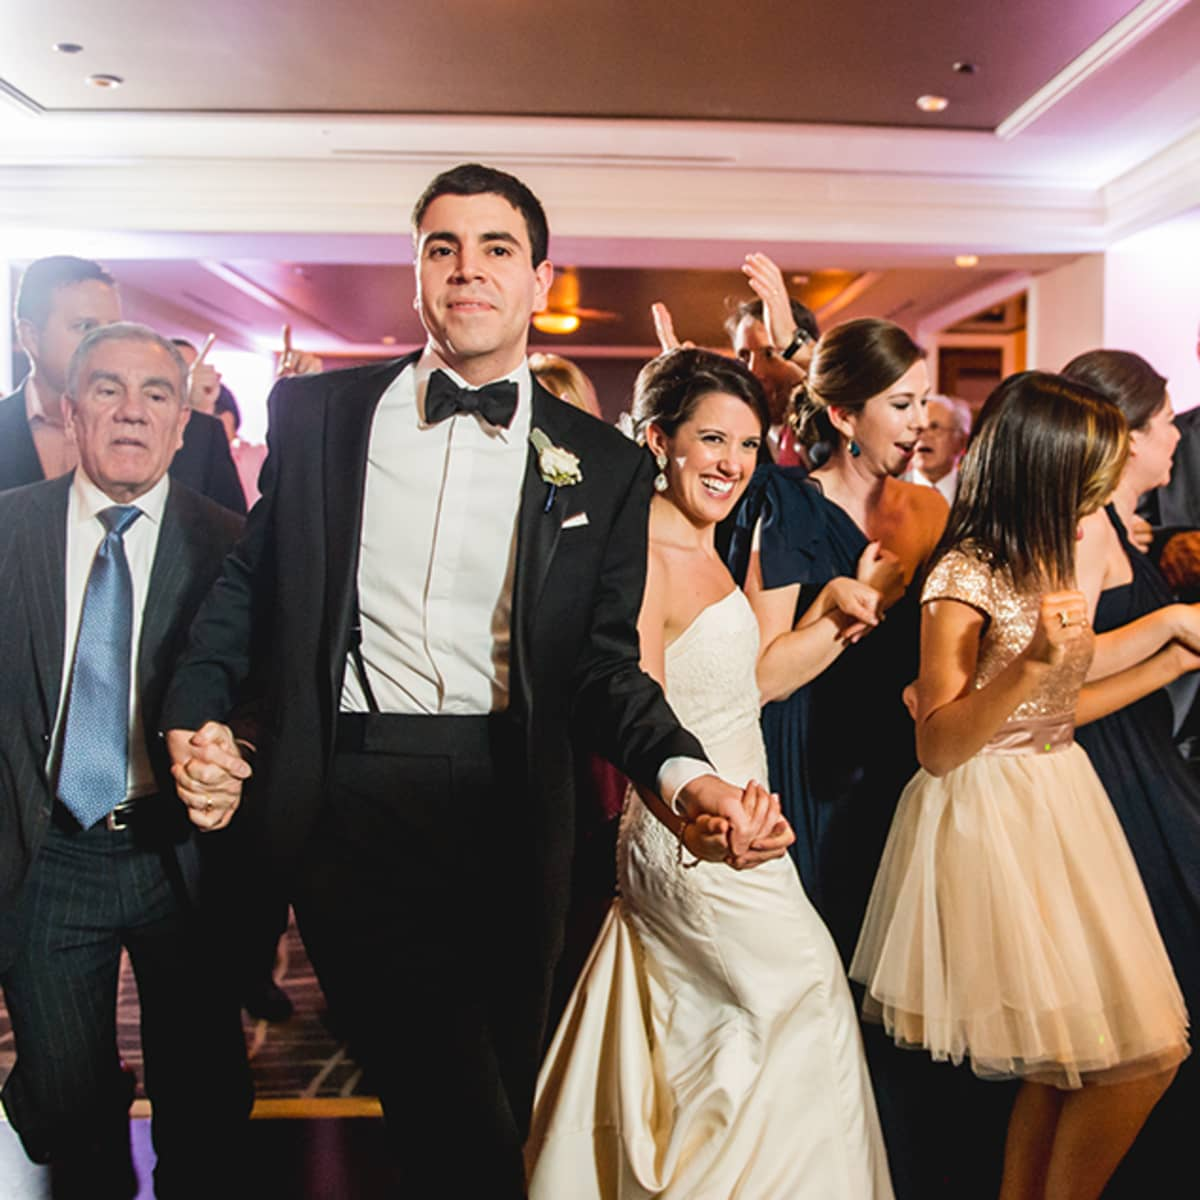 The Newlyweds And Their Guests Dance Hora At Reception